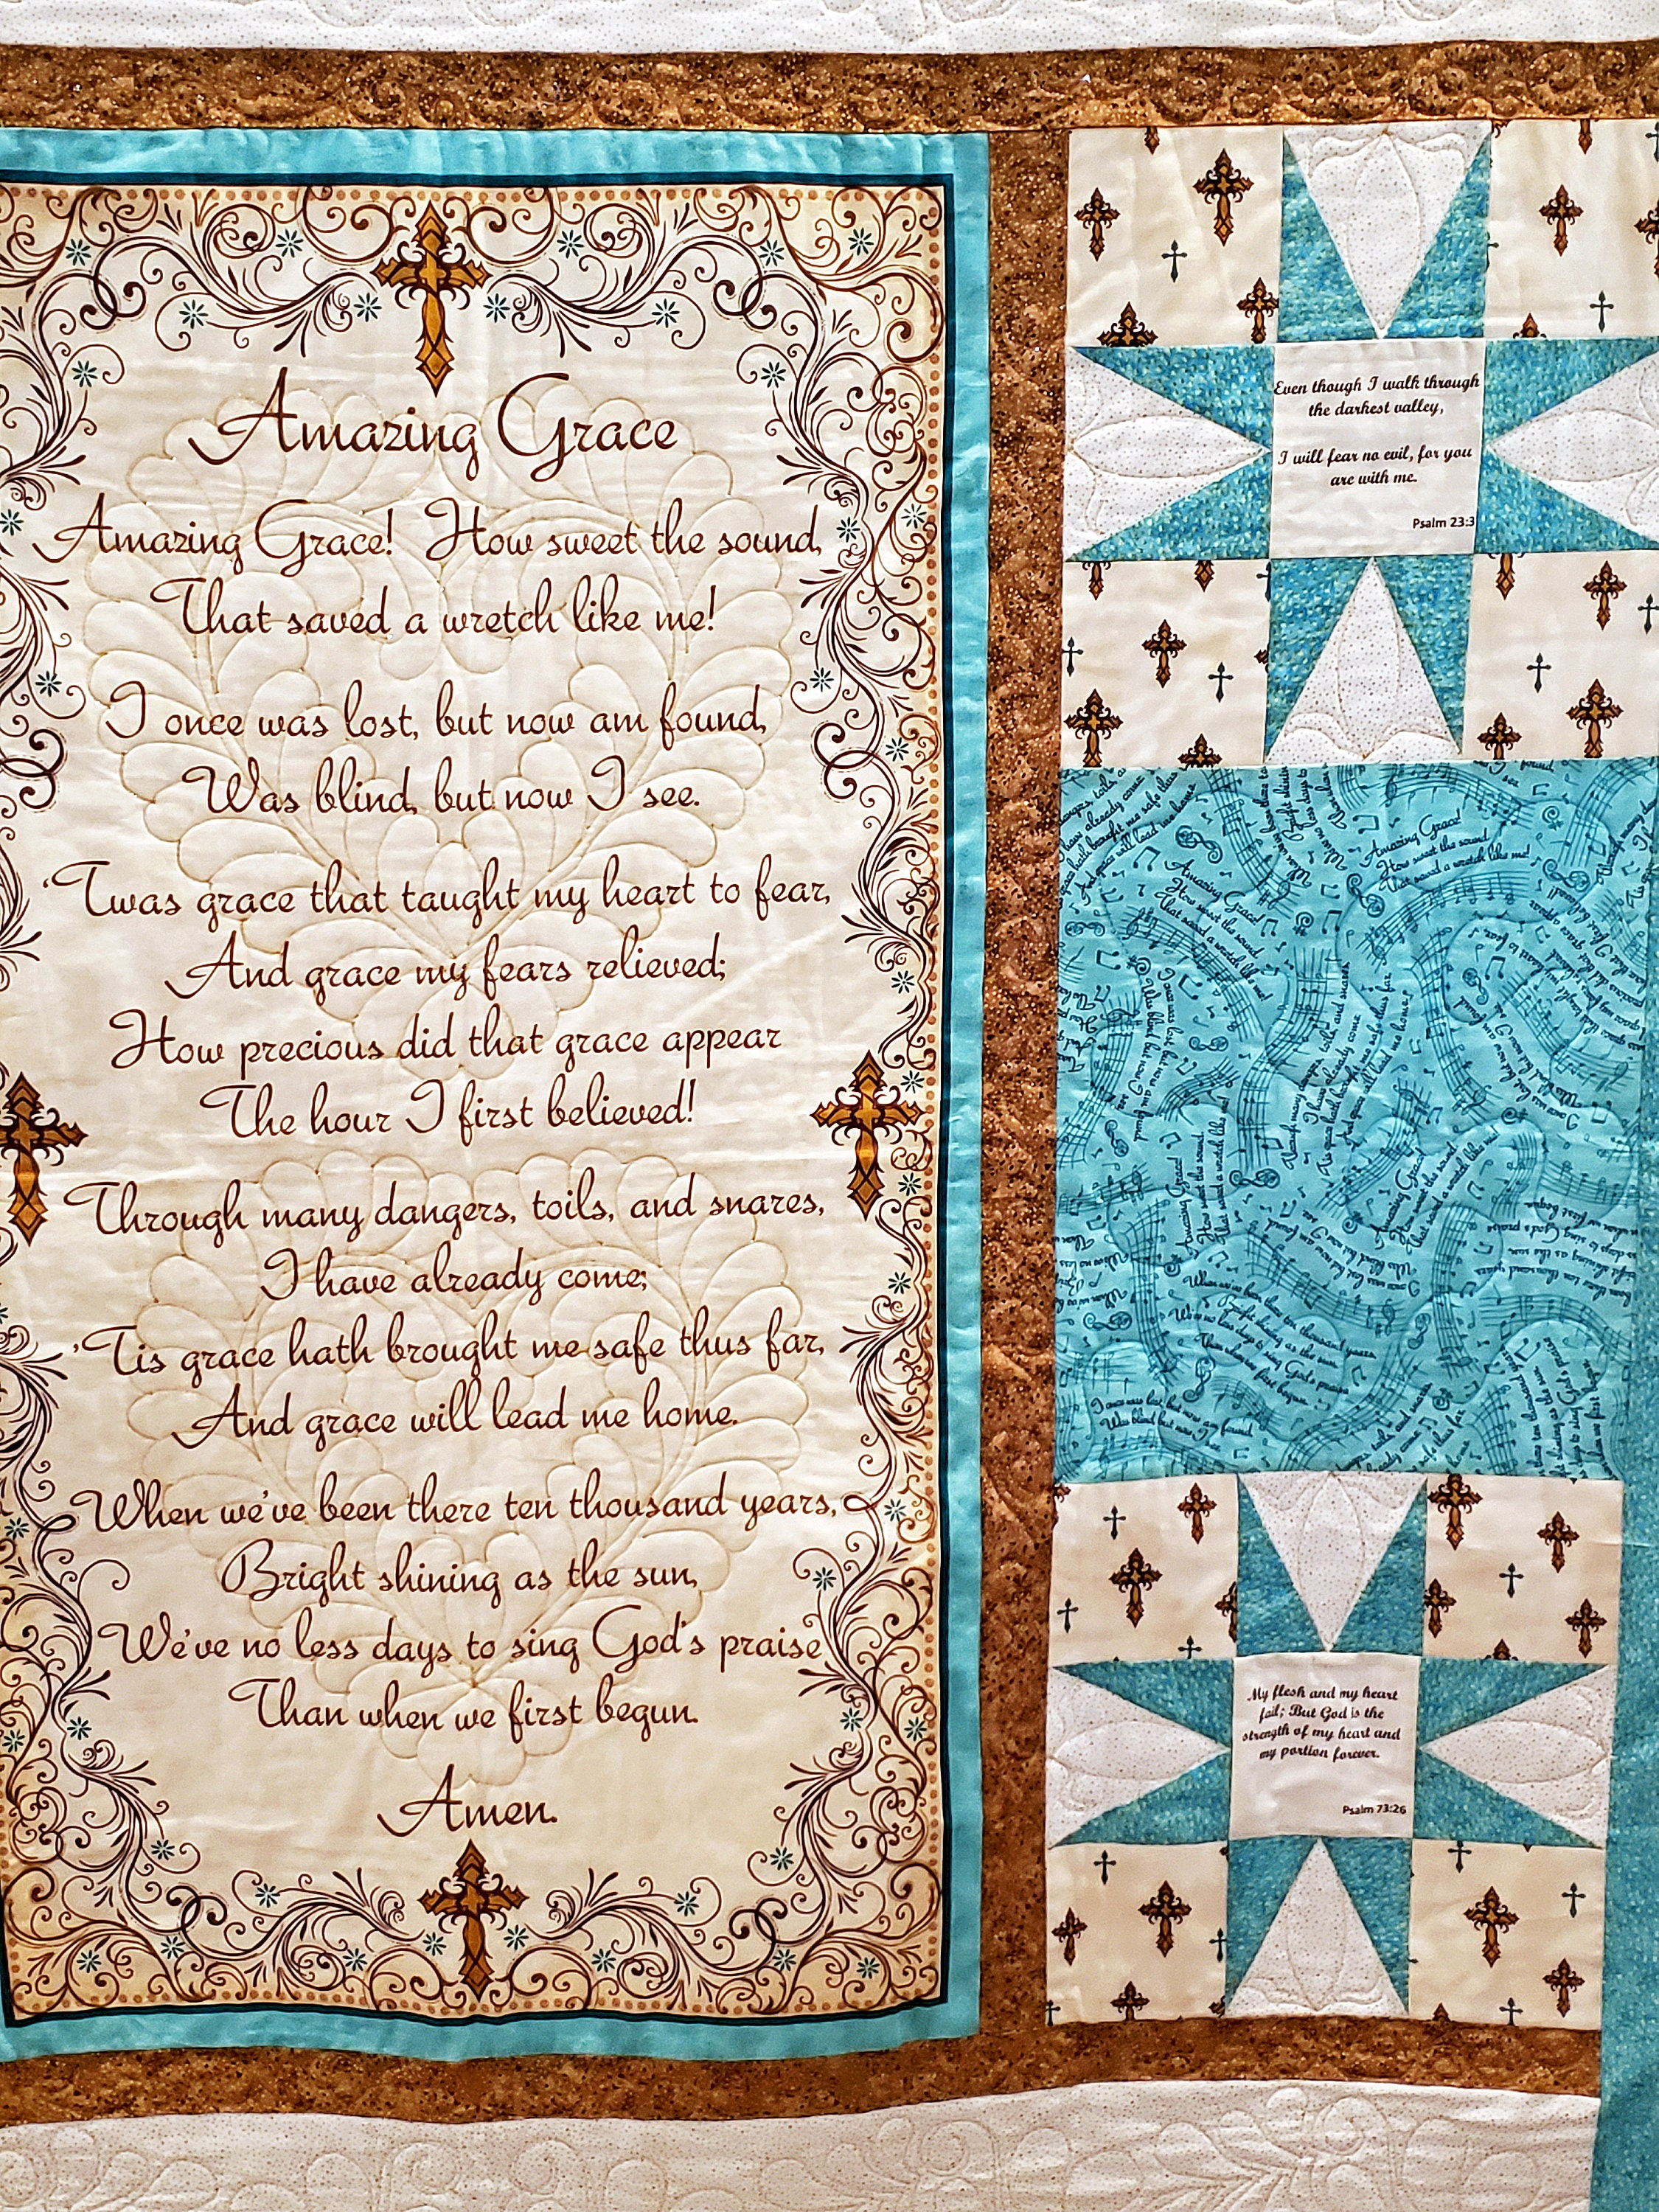 Beautiful handmade quilted wall hanging with full Amazing Grace hymn